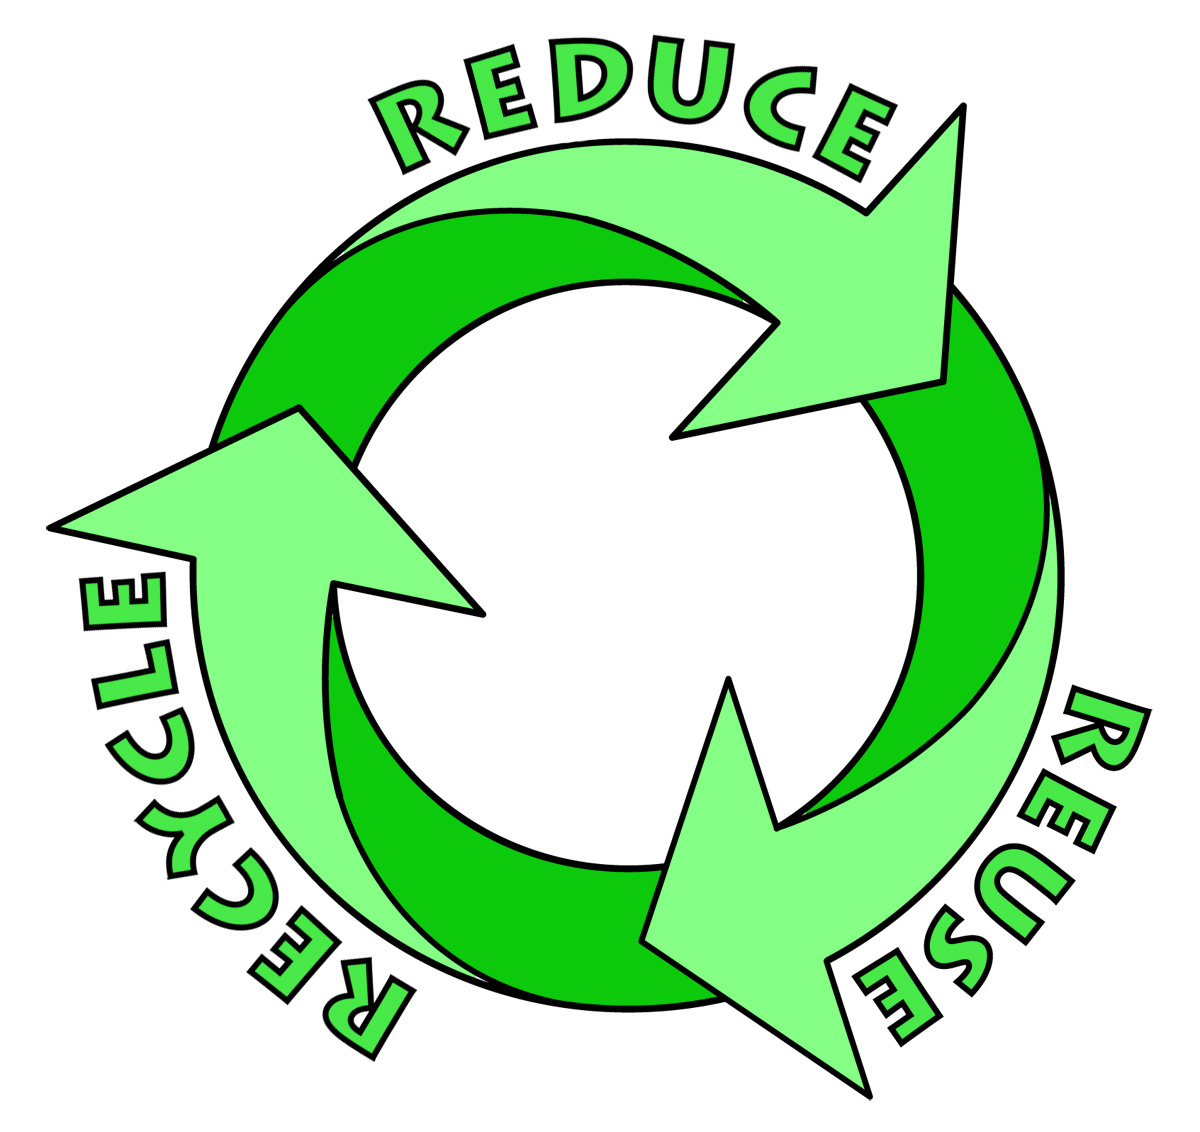 Environment clipart recycling. Free images download clip